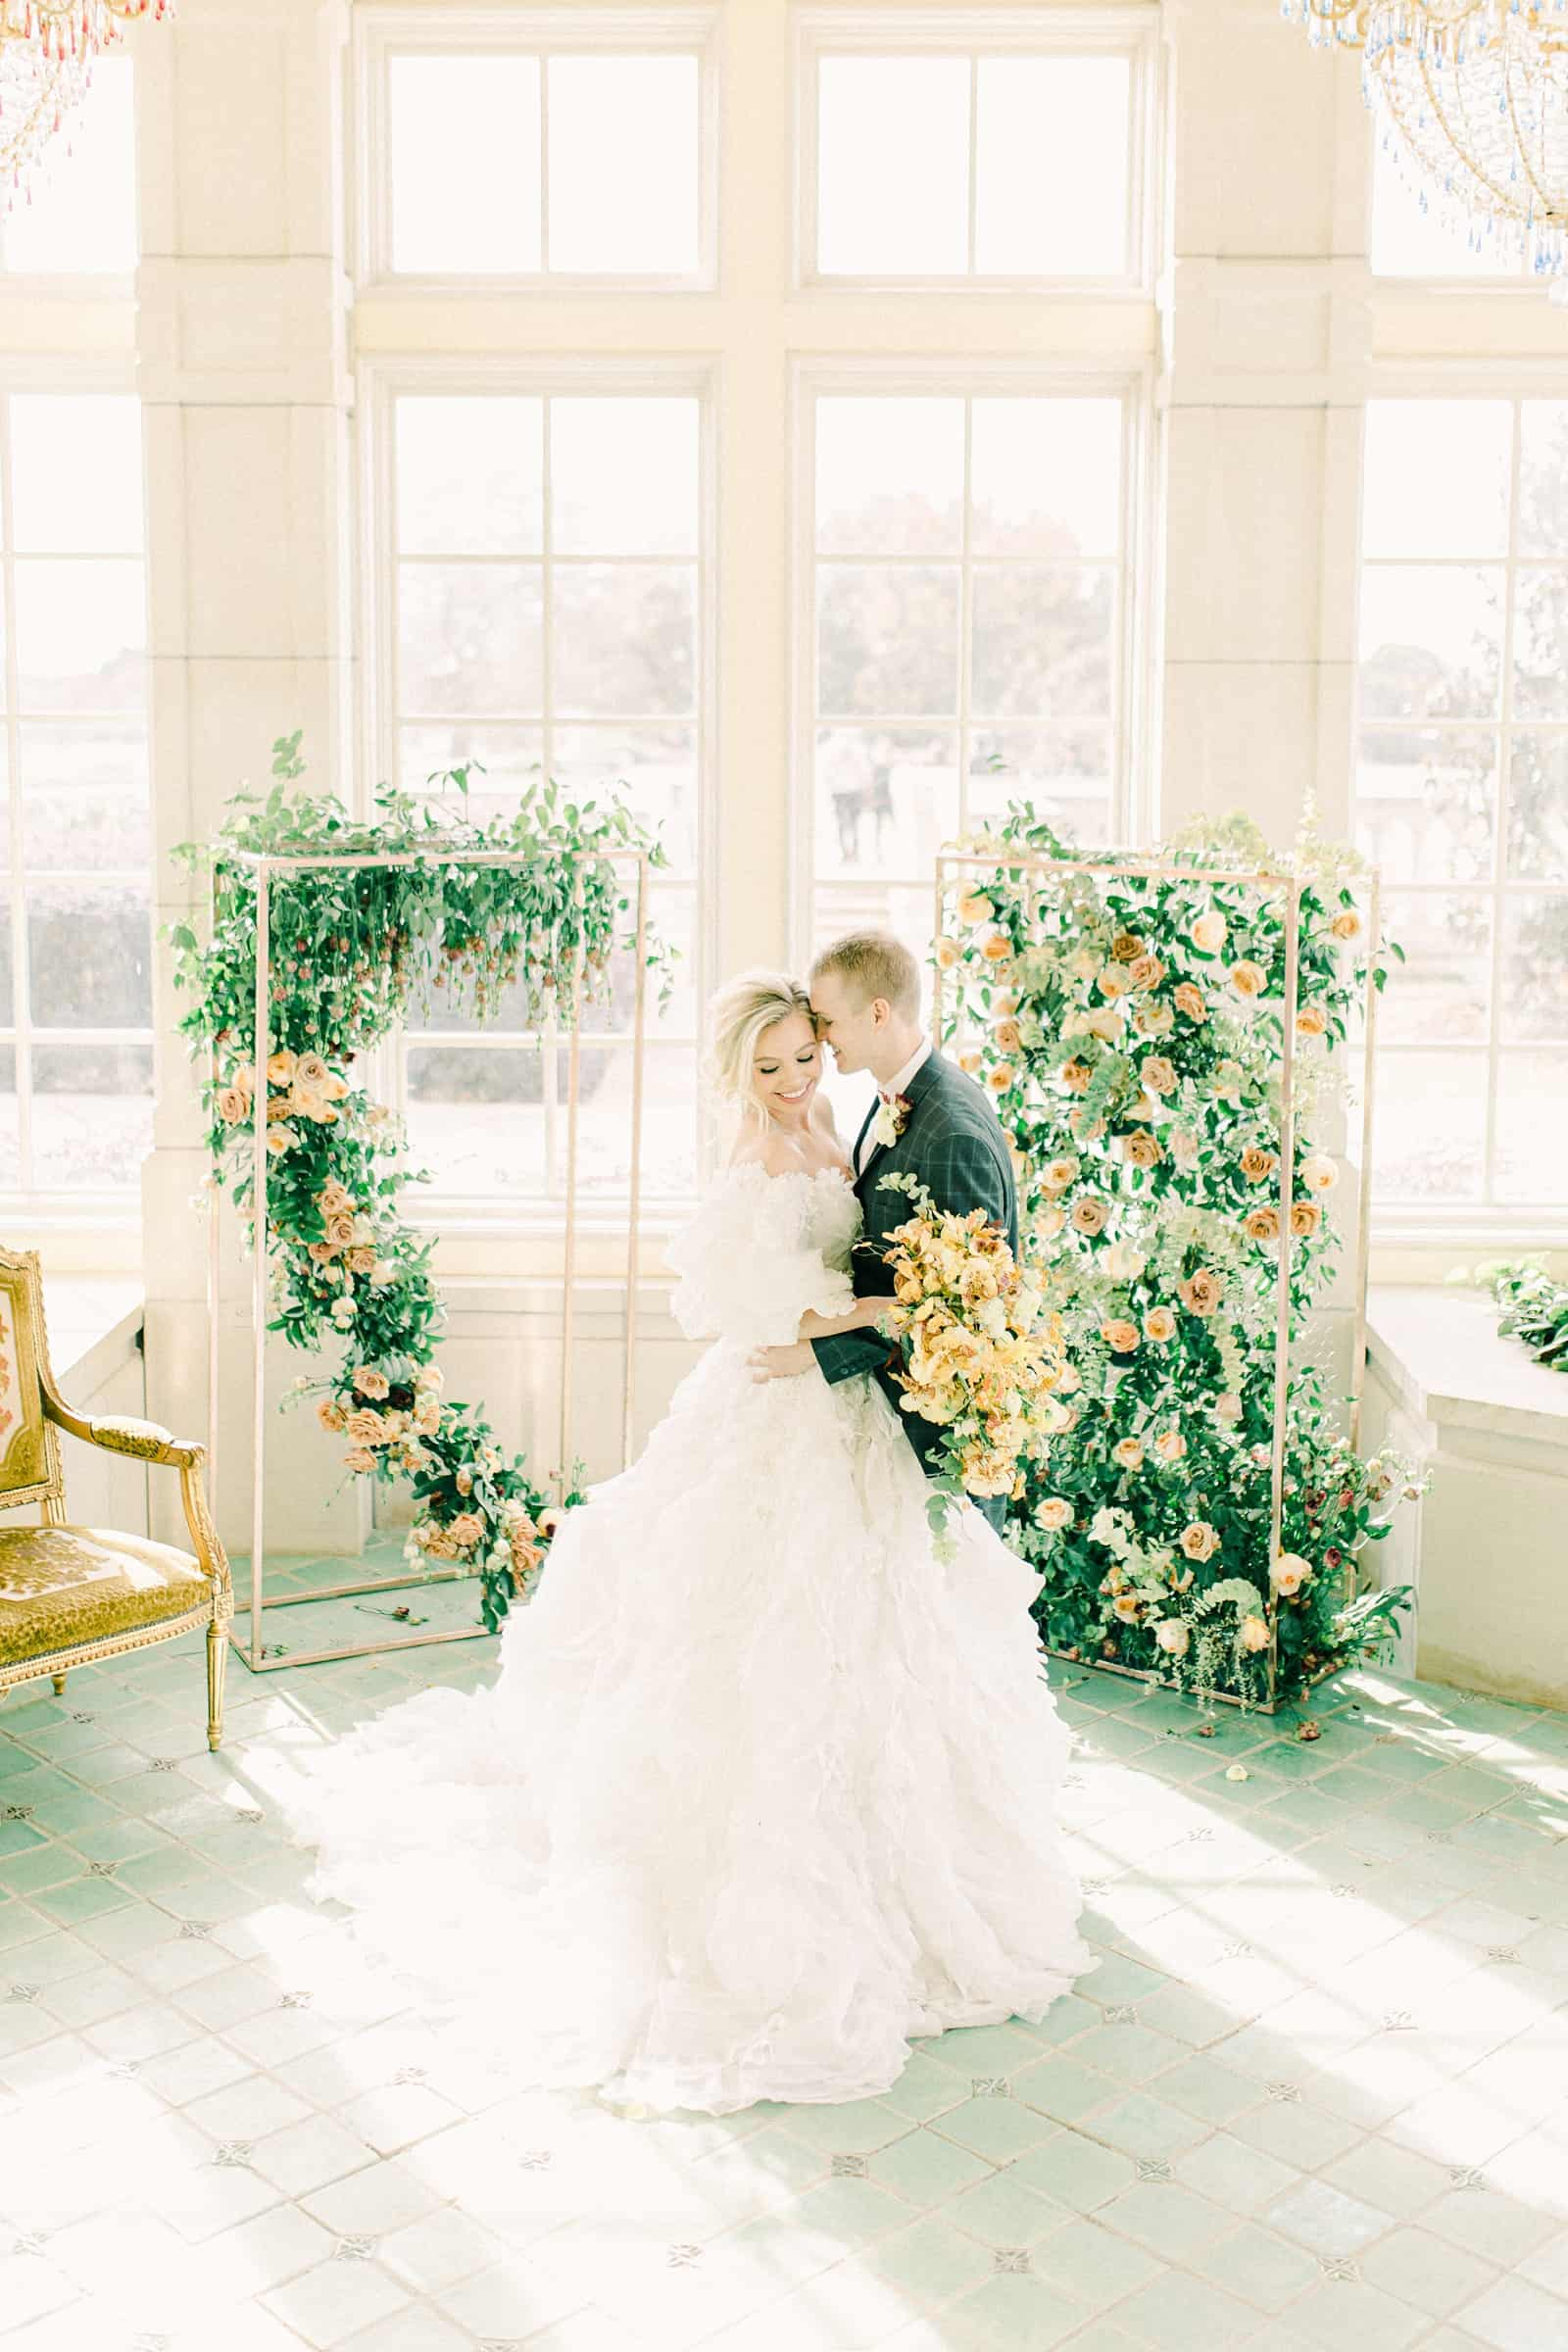 Bride and groom during wedding ceremony surrounded by flower backdrop, destination wedding photography